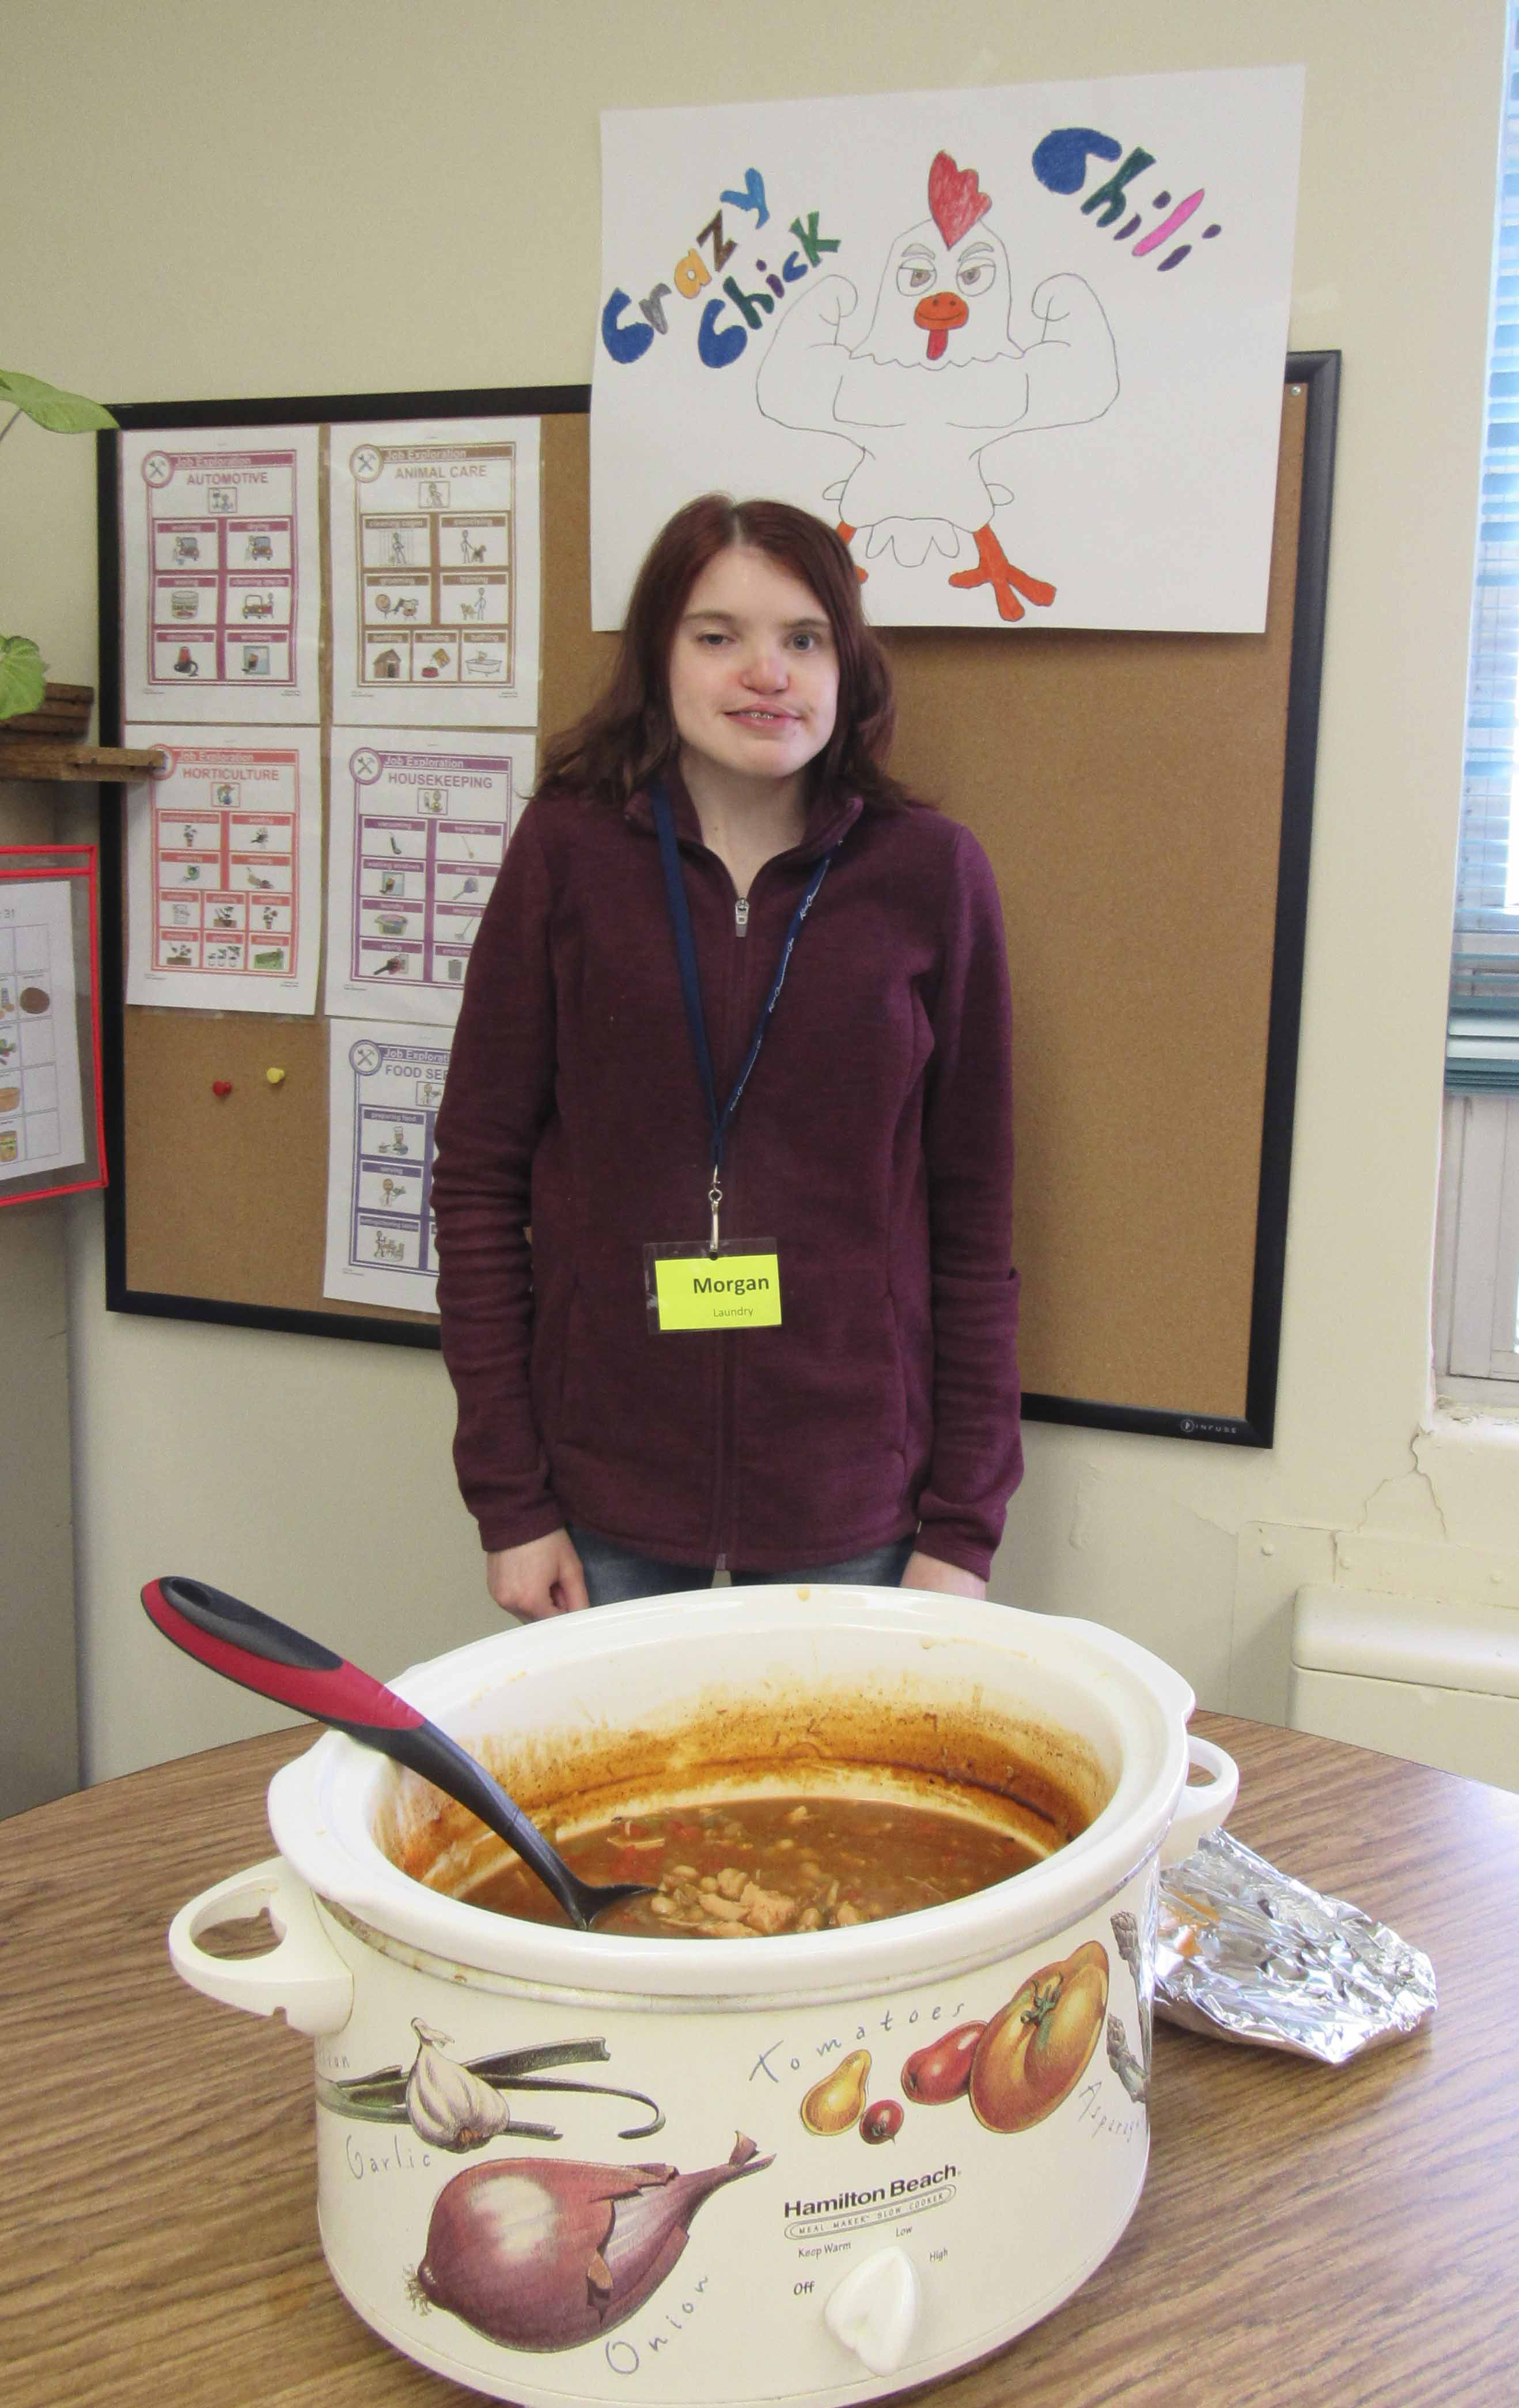 The Monticello Transition Center held its annual Chili Cook-off on April 29. There were three different types of chili available for taste testing. After voting, you were treated to a bowl of your favorite chili. Morgan Ginn won first place with her Crazy Chicken Chili. (Photos by Kim Brooks)